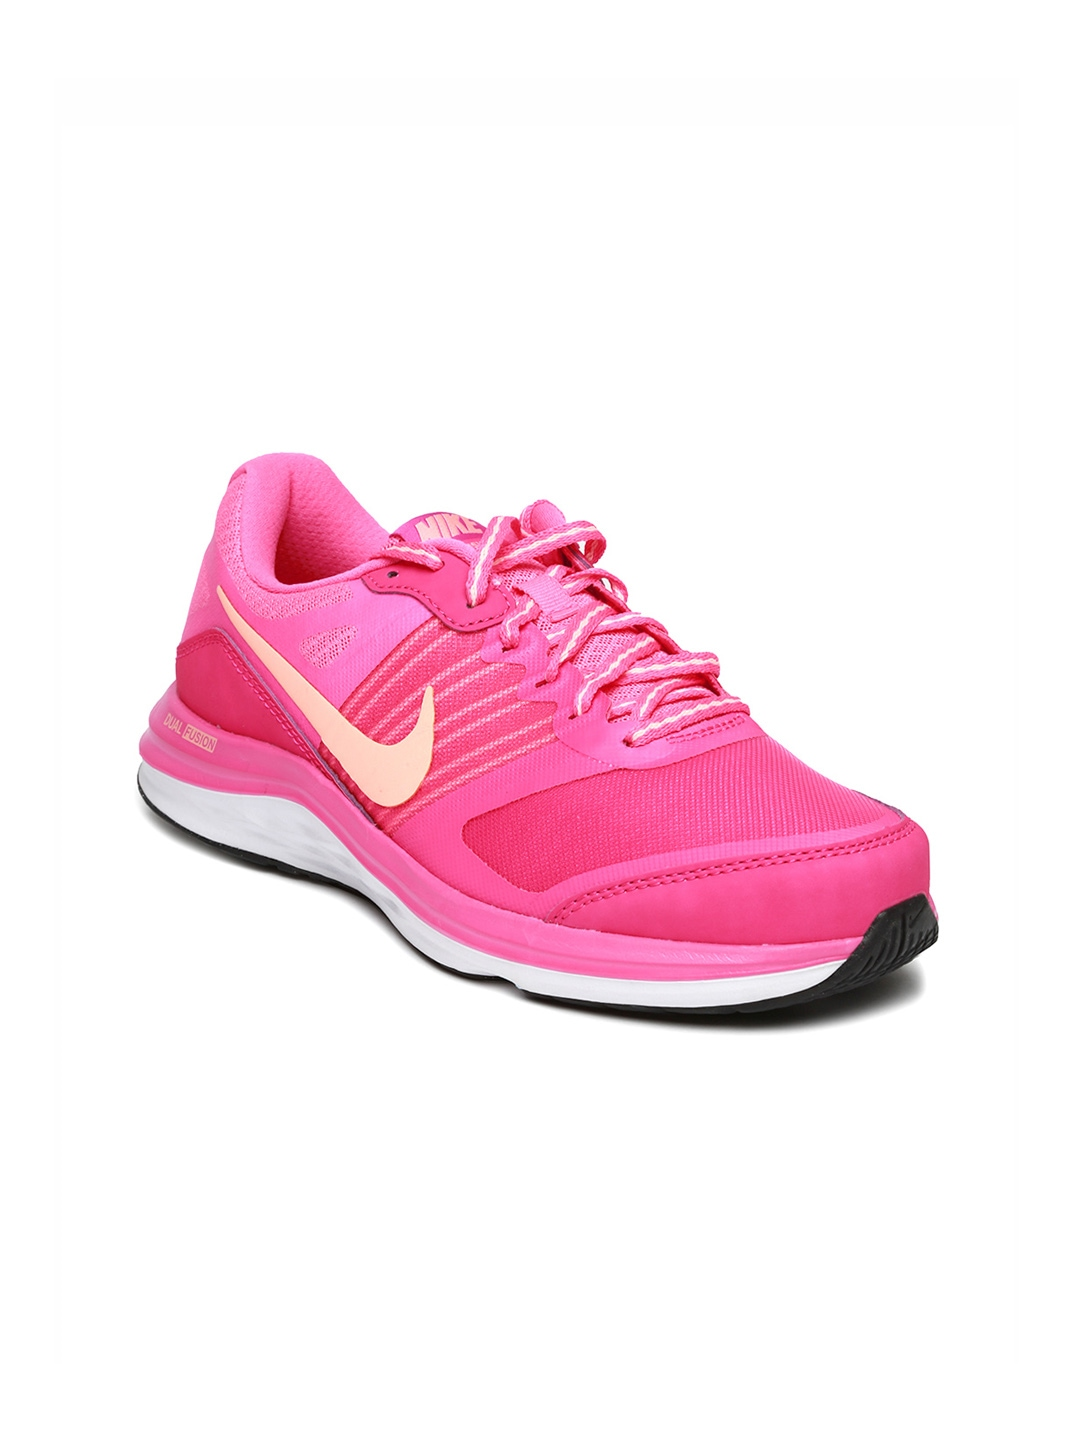 myntra nike pink dual fusion x msl running shoes